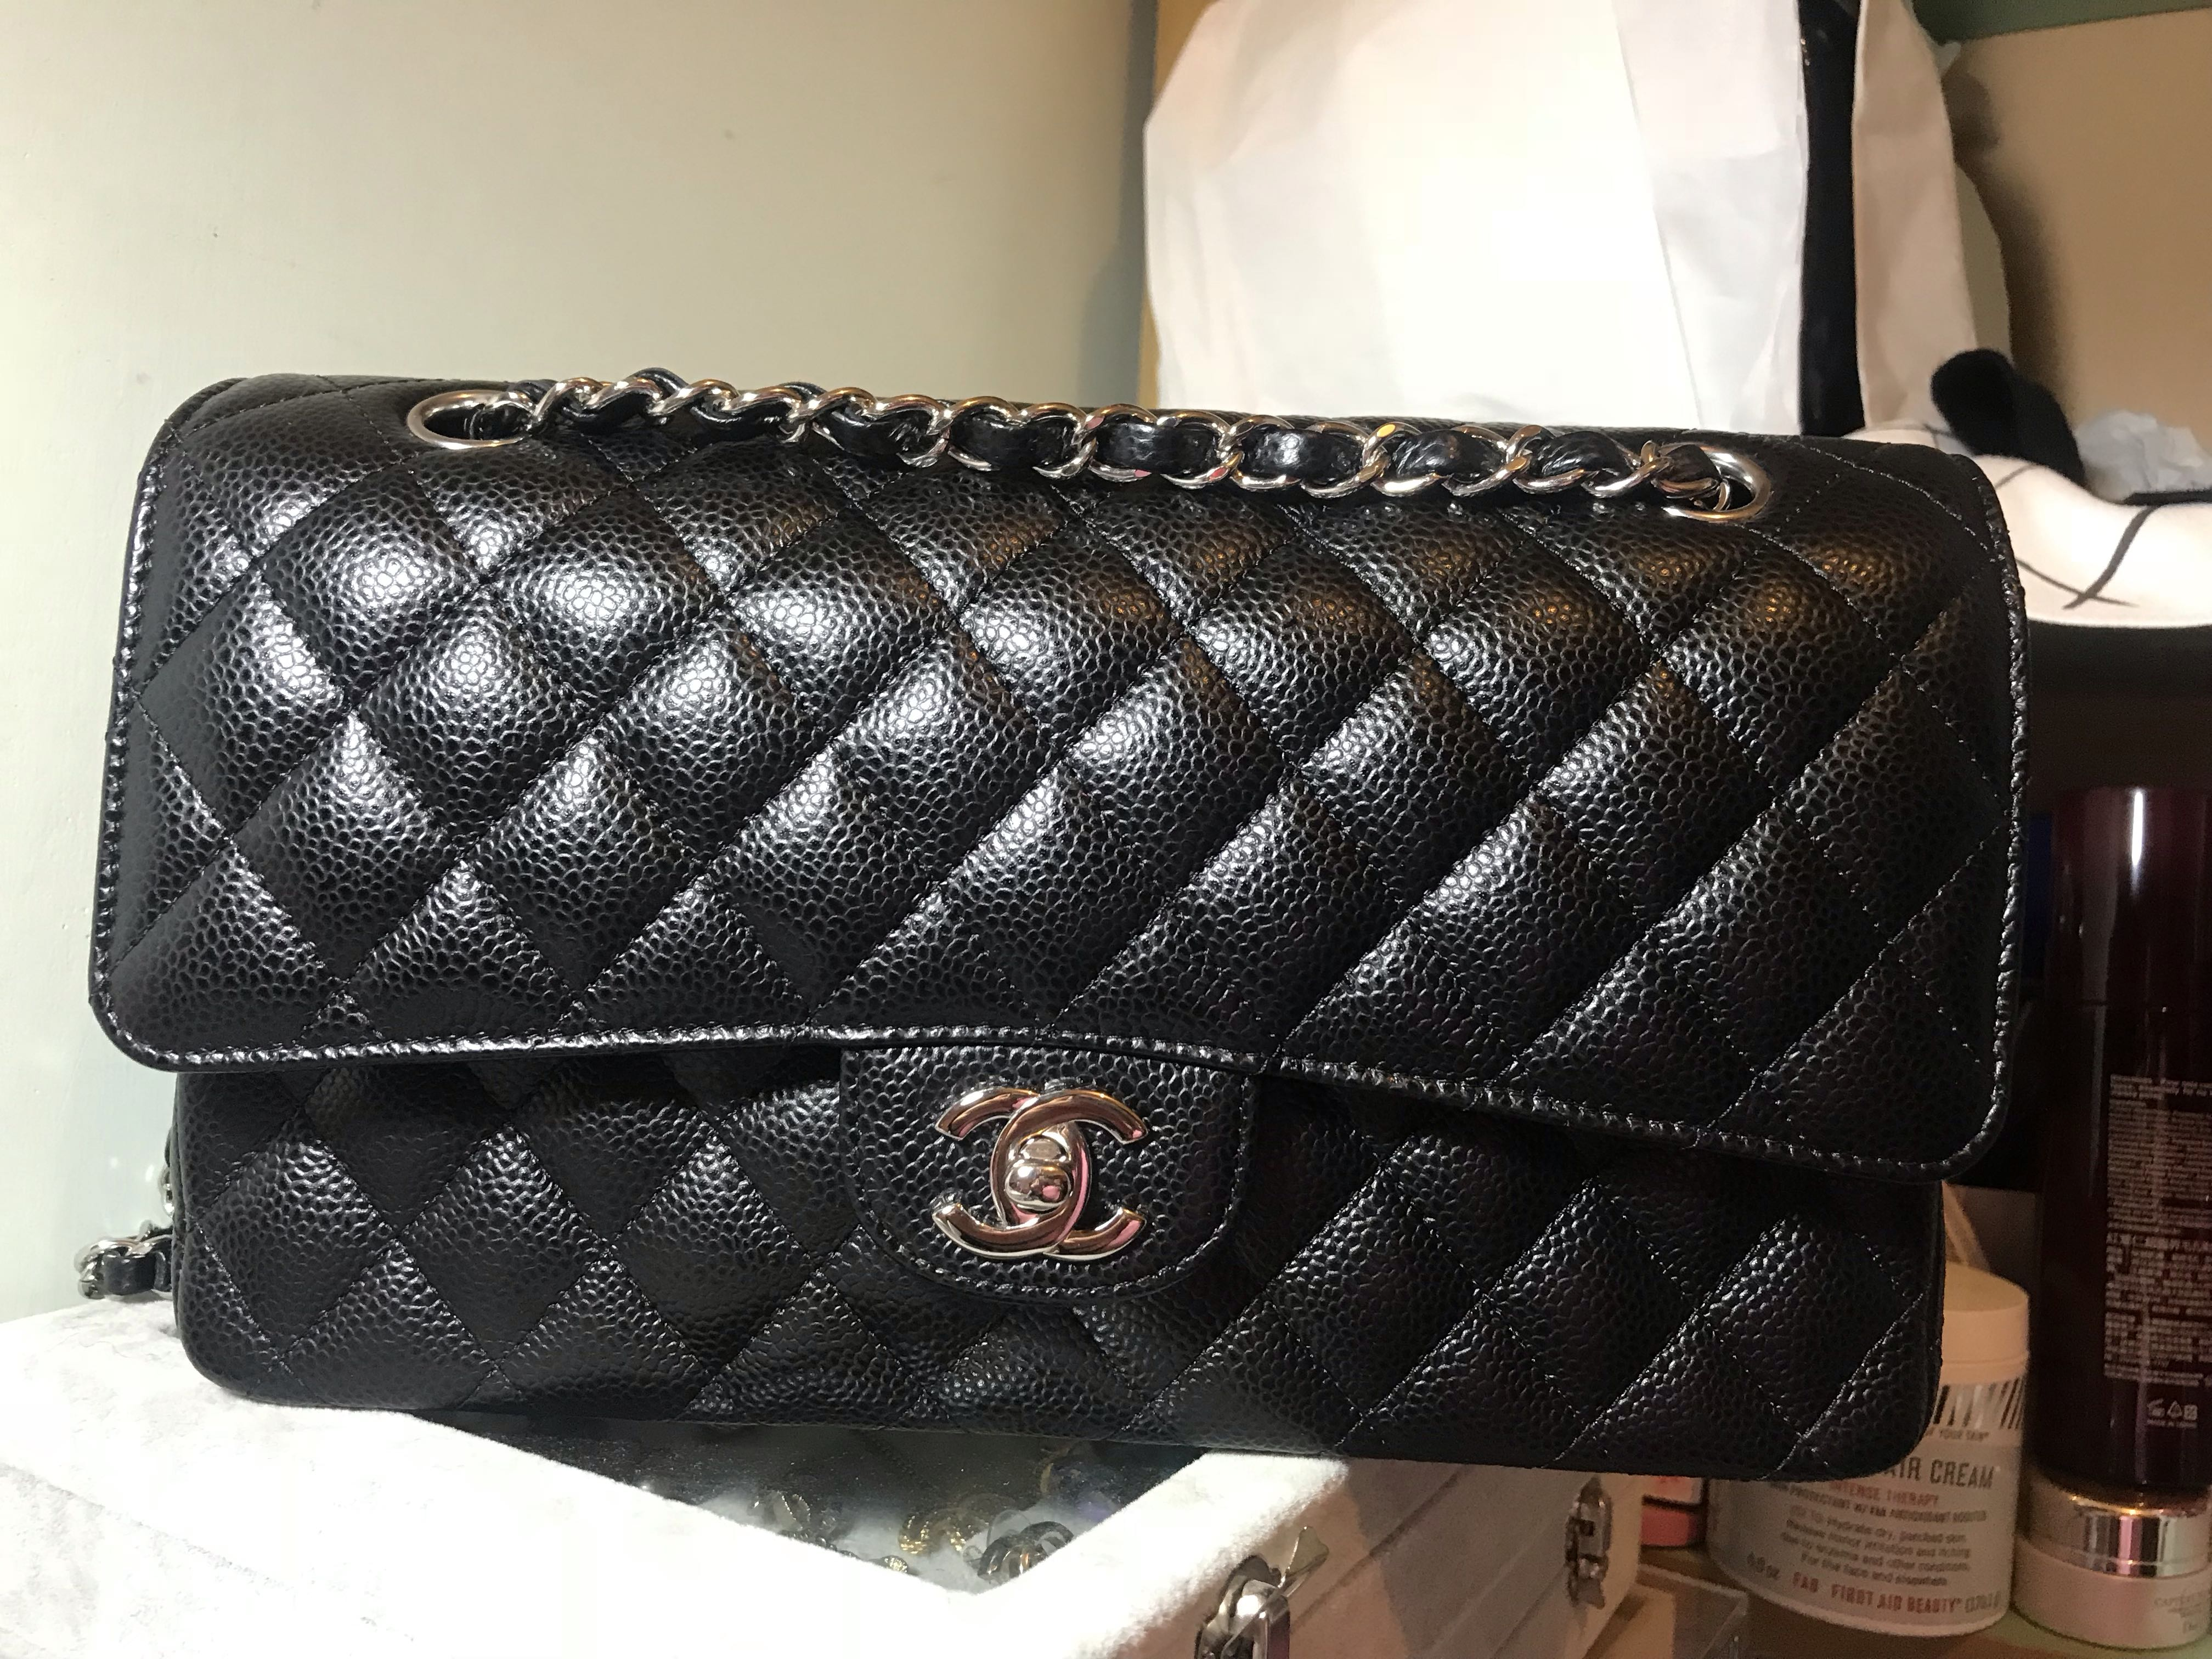 481d55a81b55 Chanel Classic Caviar Medium SHW, Luxury, Bags & Wallets on Carousell